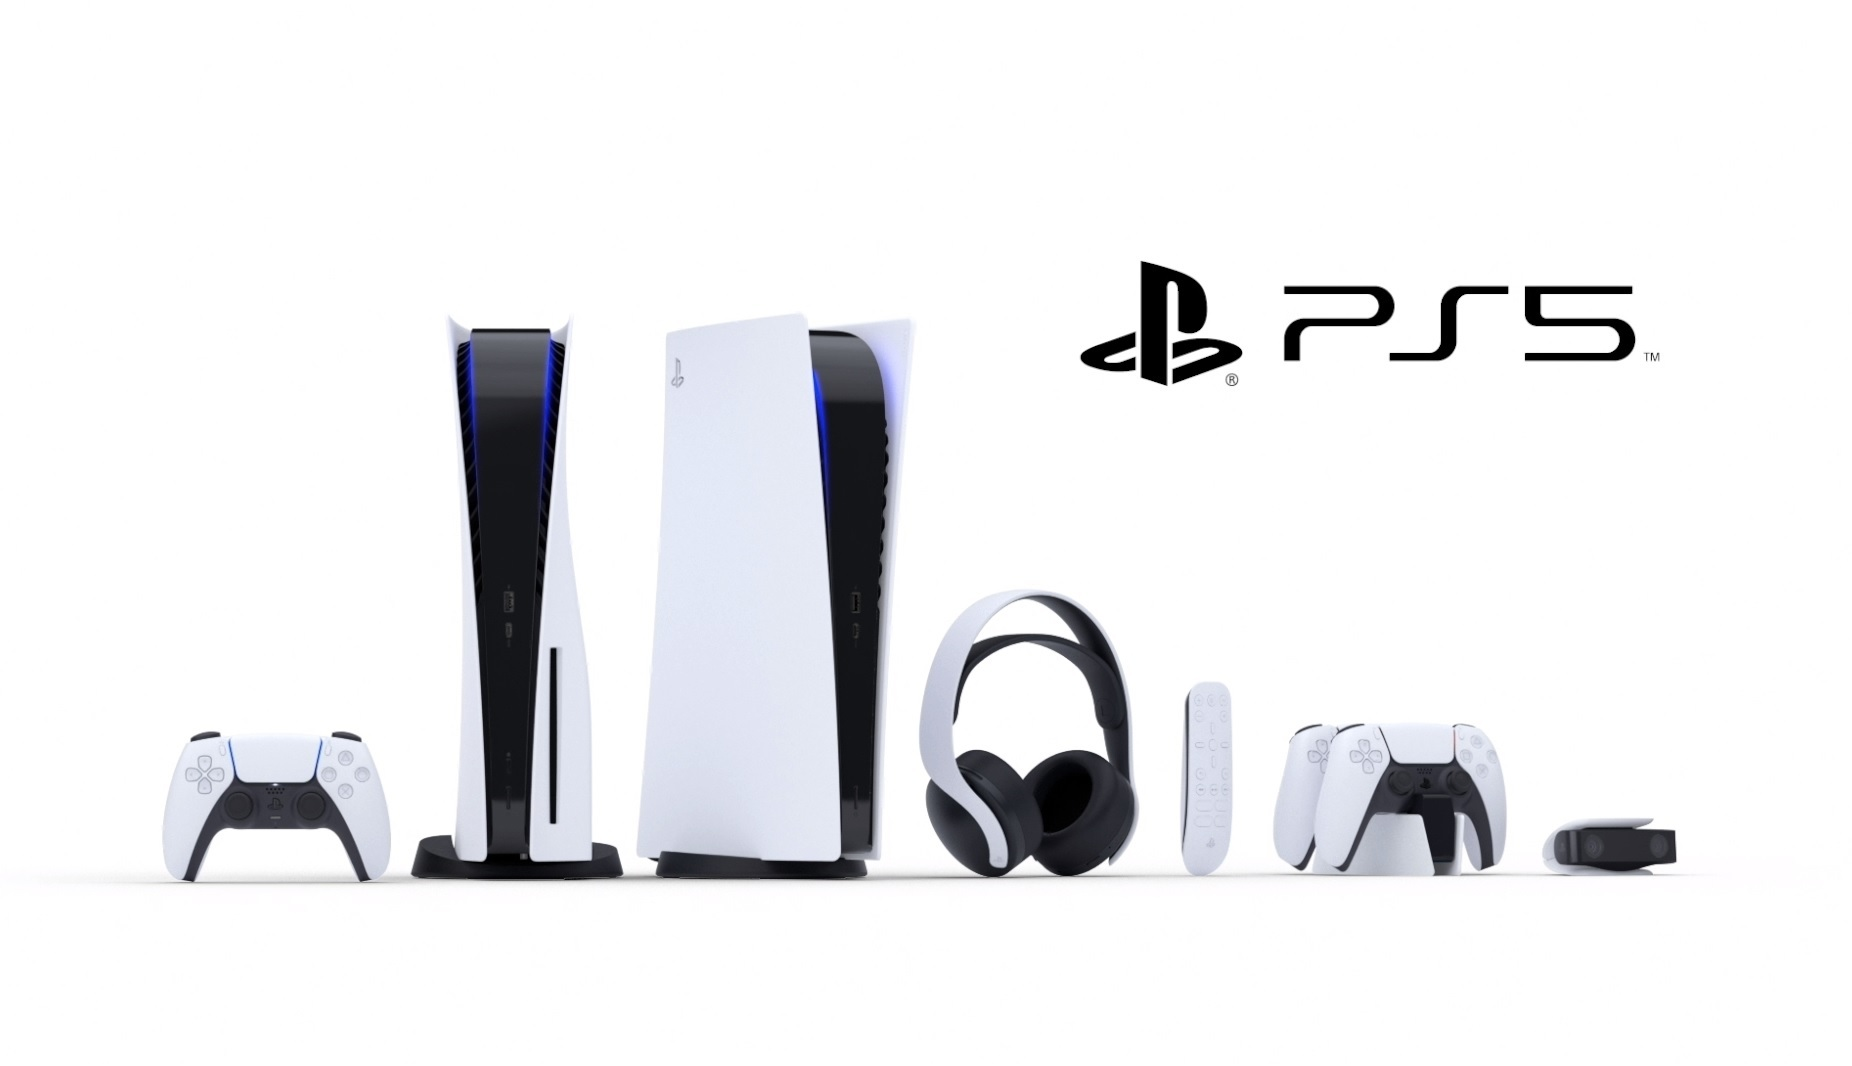 PS5 Accessories will raise the Console Price very High